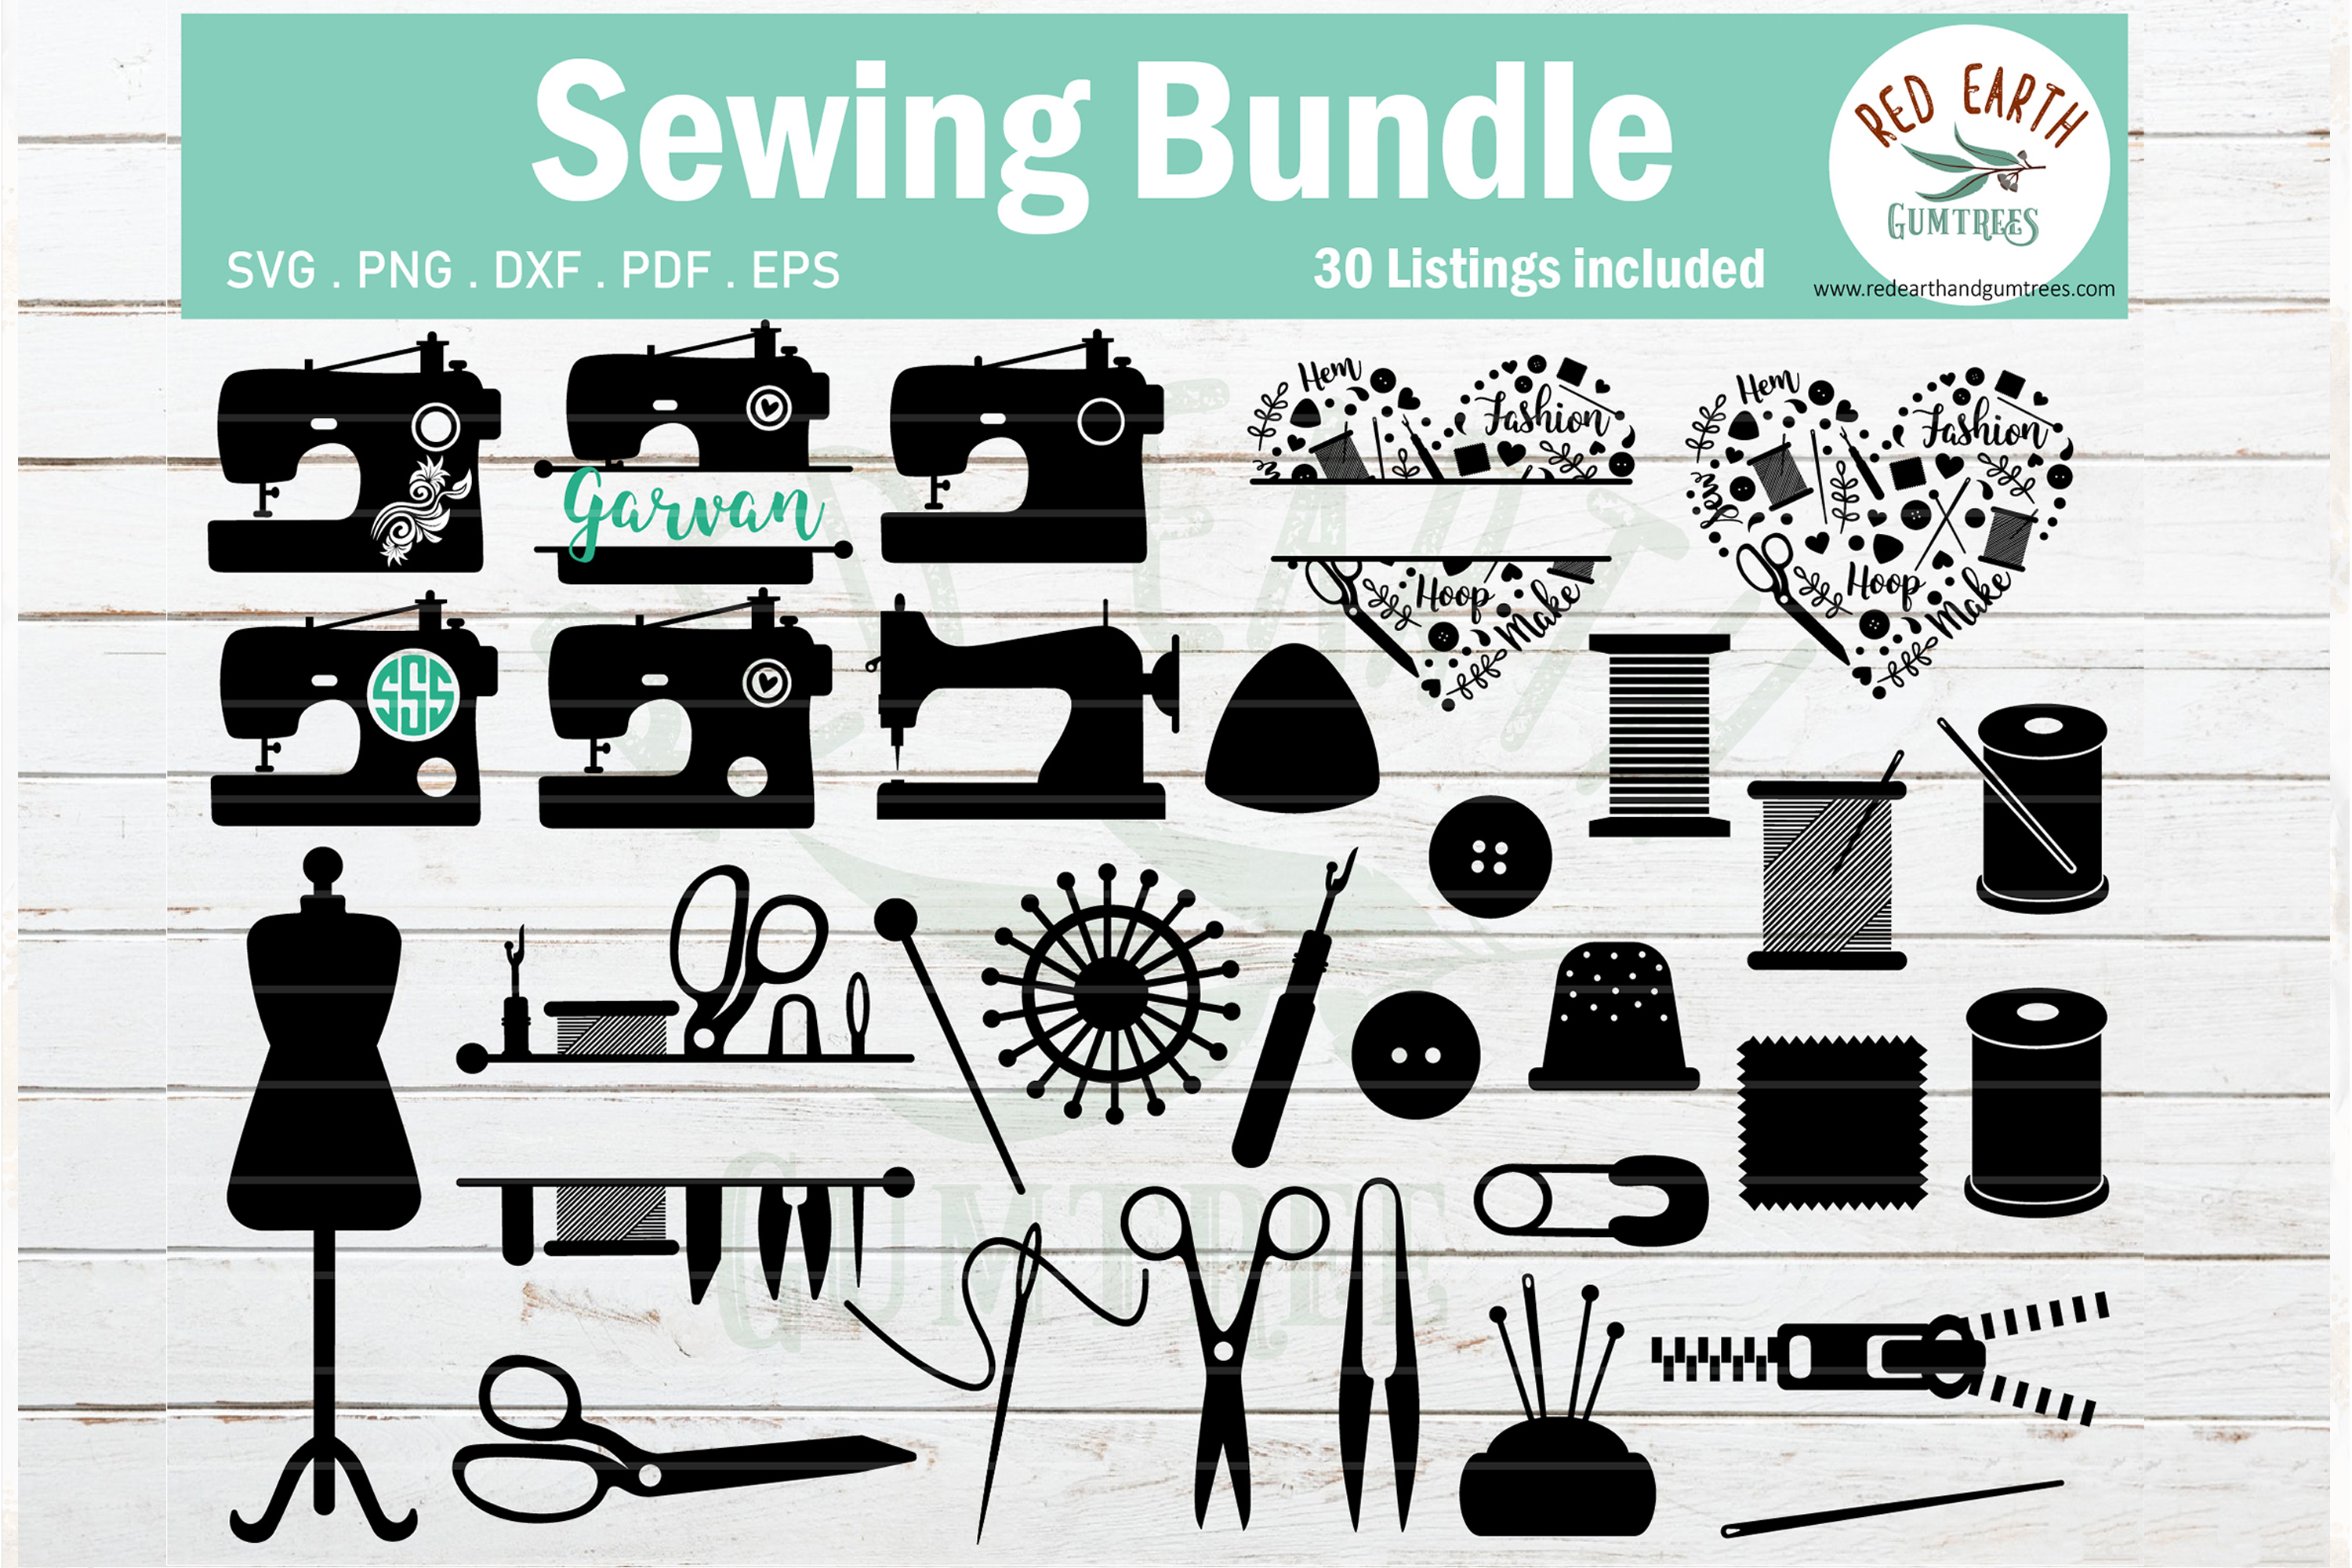 Download Free Sewing Bundle Sewing Machine Graphic By Redearth And Gumtrees for Cricut Explore, Silhouette and other cutting machines.